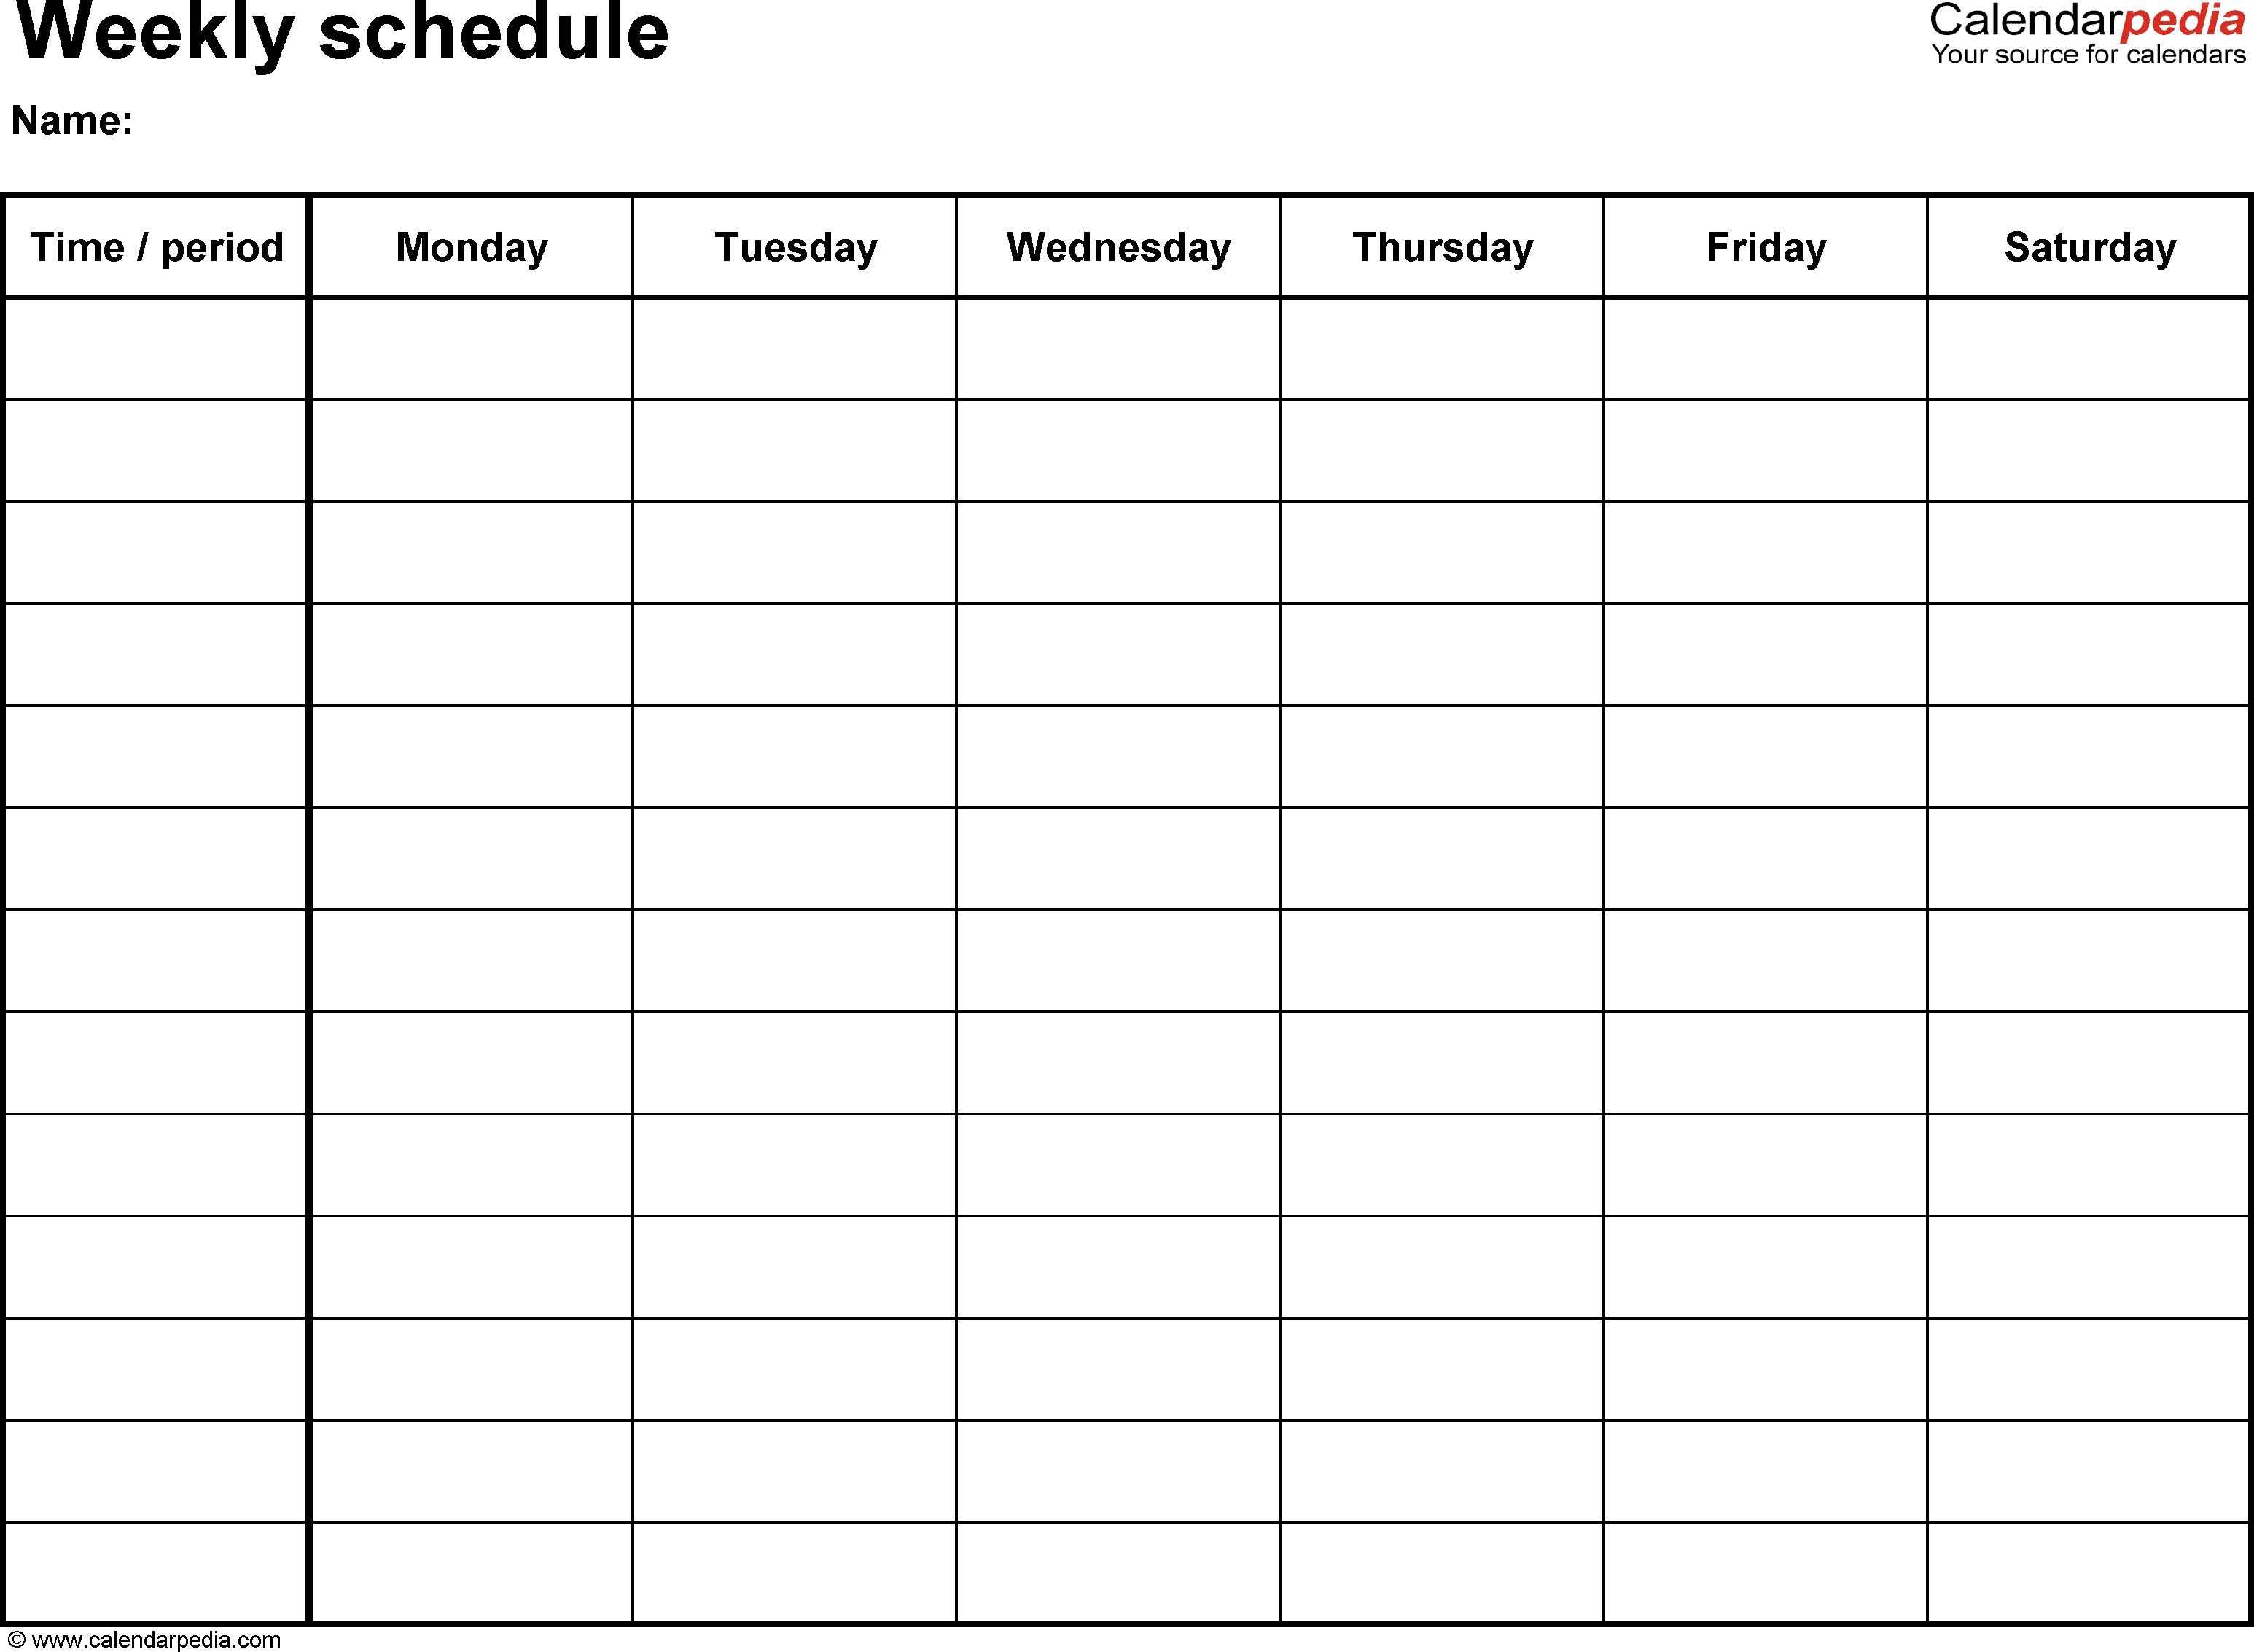 Free Weekly Schedule Templates For Excel - 18 Templates regarding Emplyee Schedule Template Starting Friday